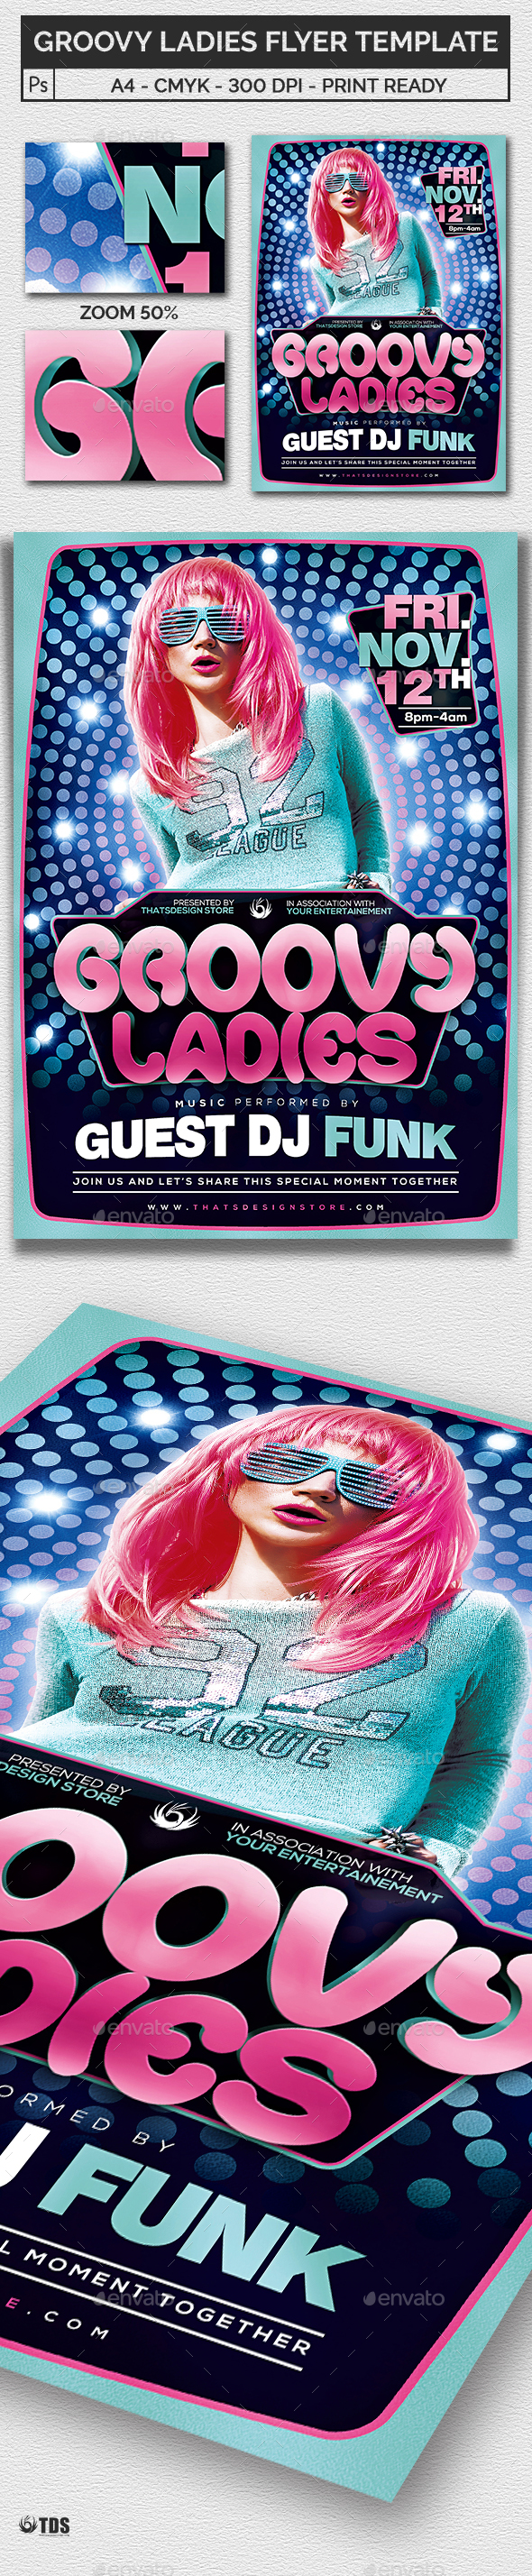 Groovy Ladies Flyer Template - Clubs & Parties Events